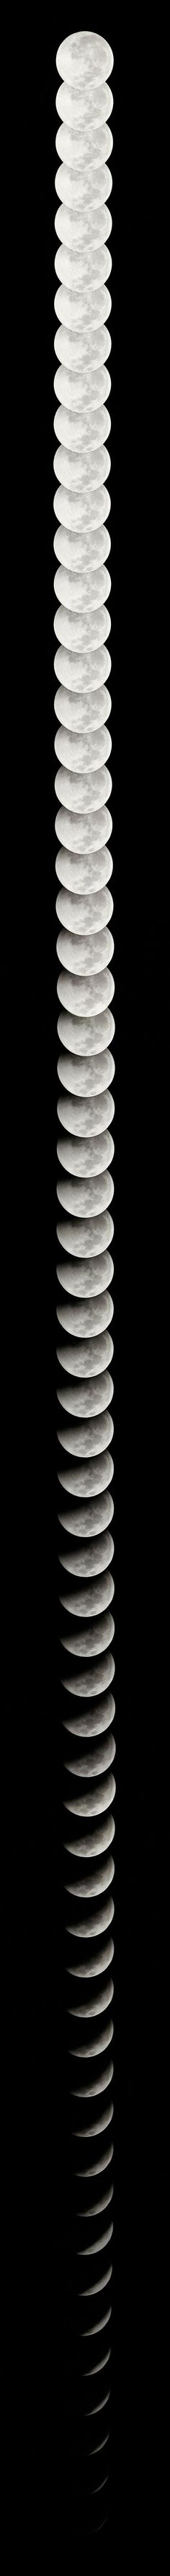 The Moon: 29 days, 12 hours, 43 minutes, 12 seconds. In this magnificent photographic composition, one can appreciate the scene which becomes a lunar month as it travels through space.